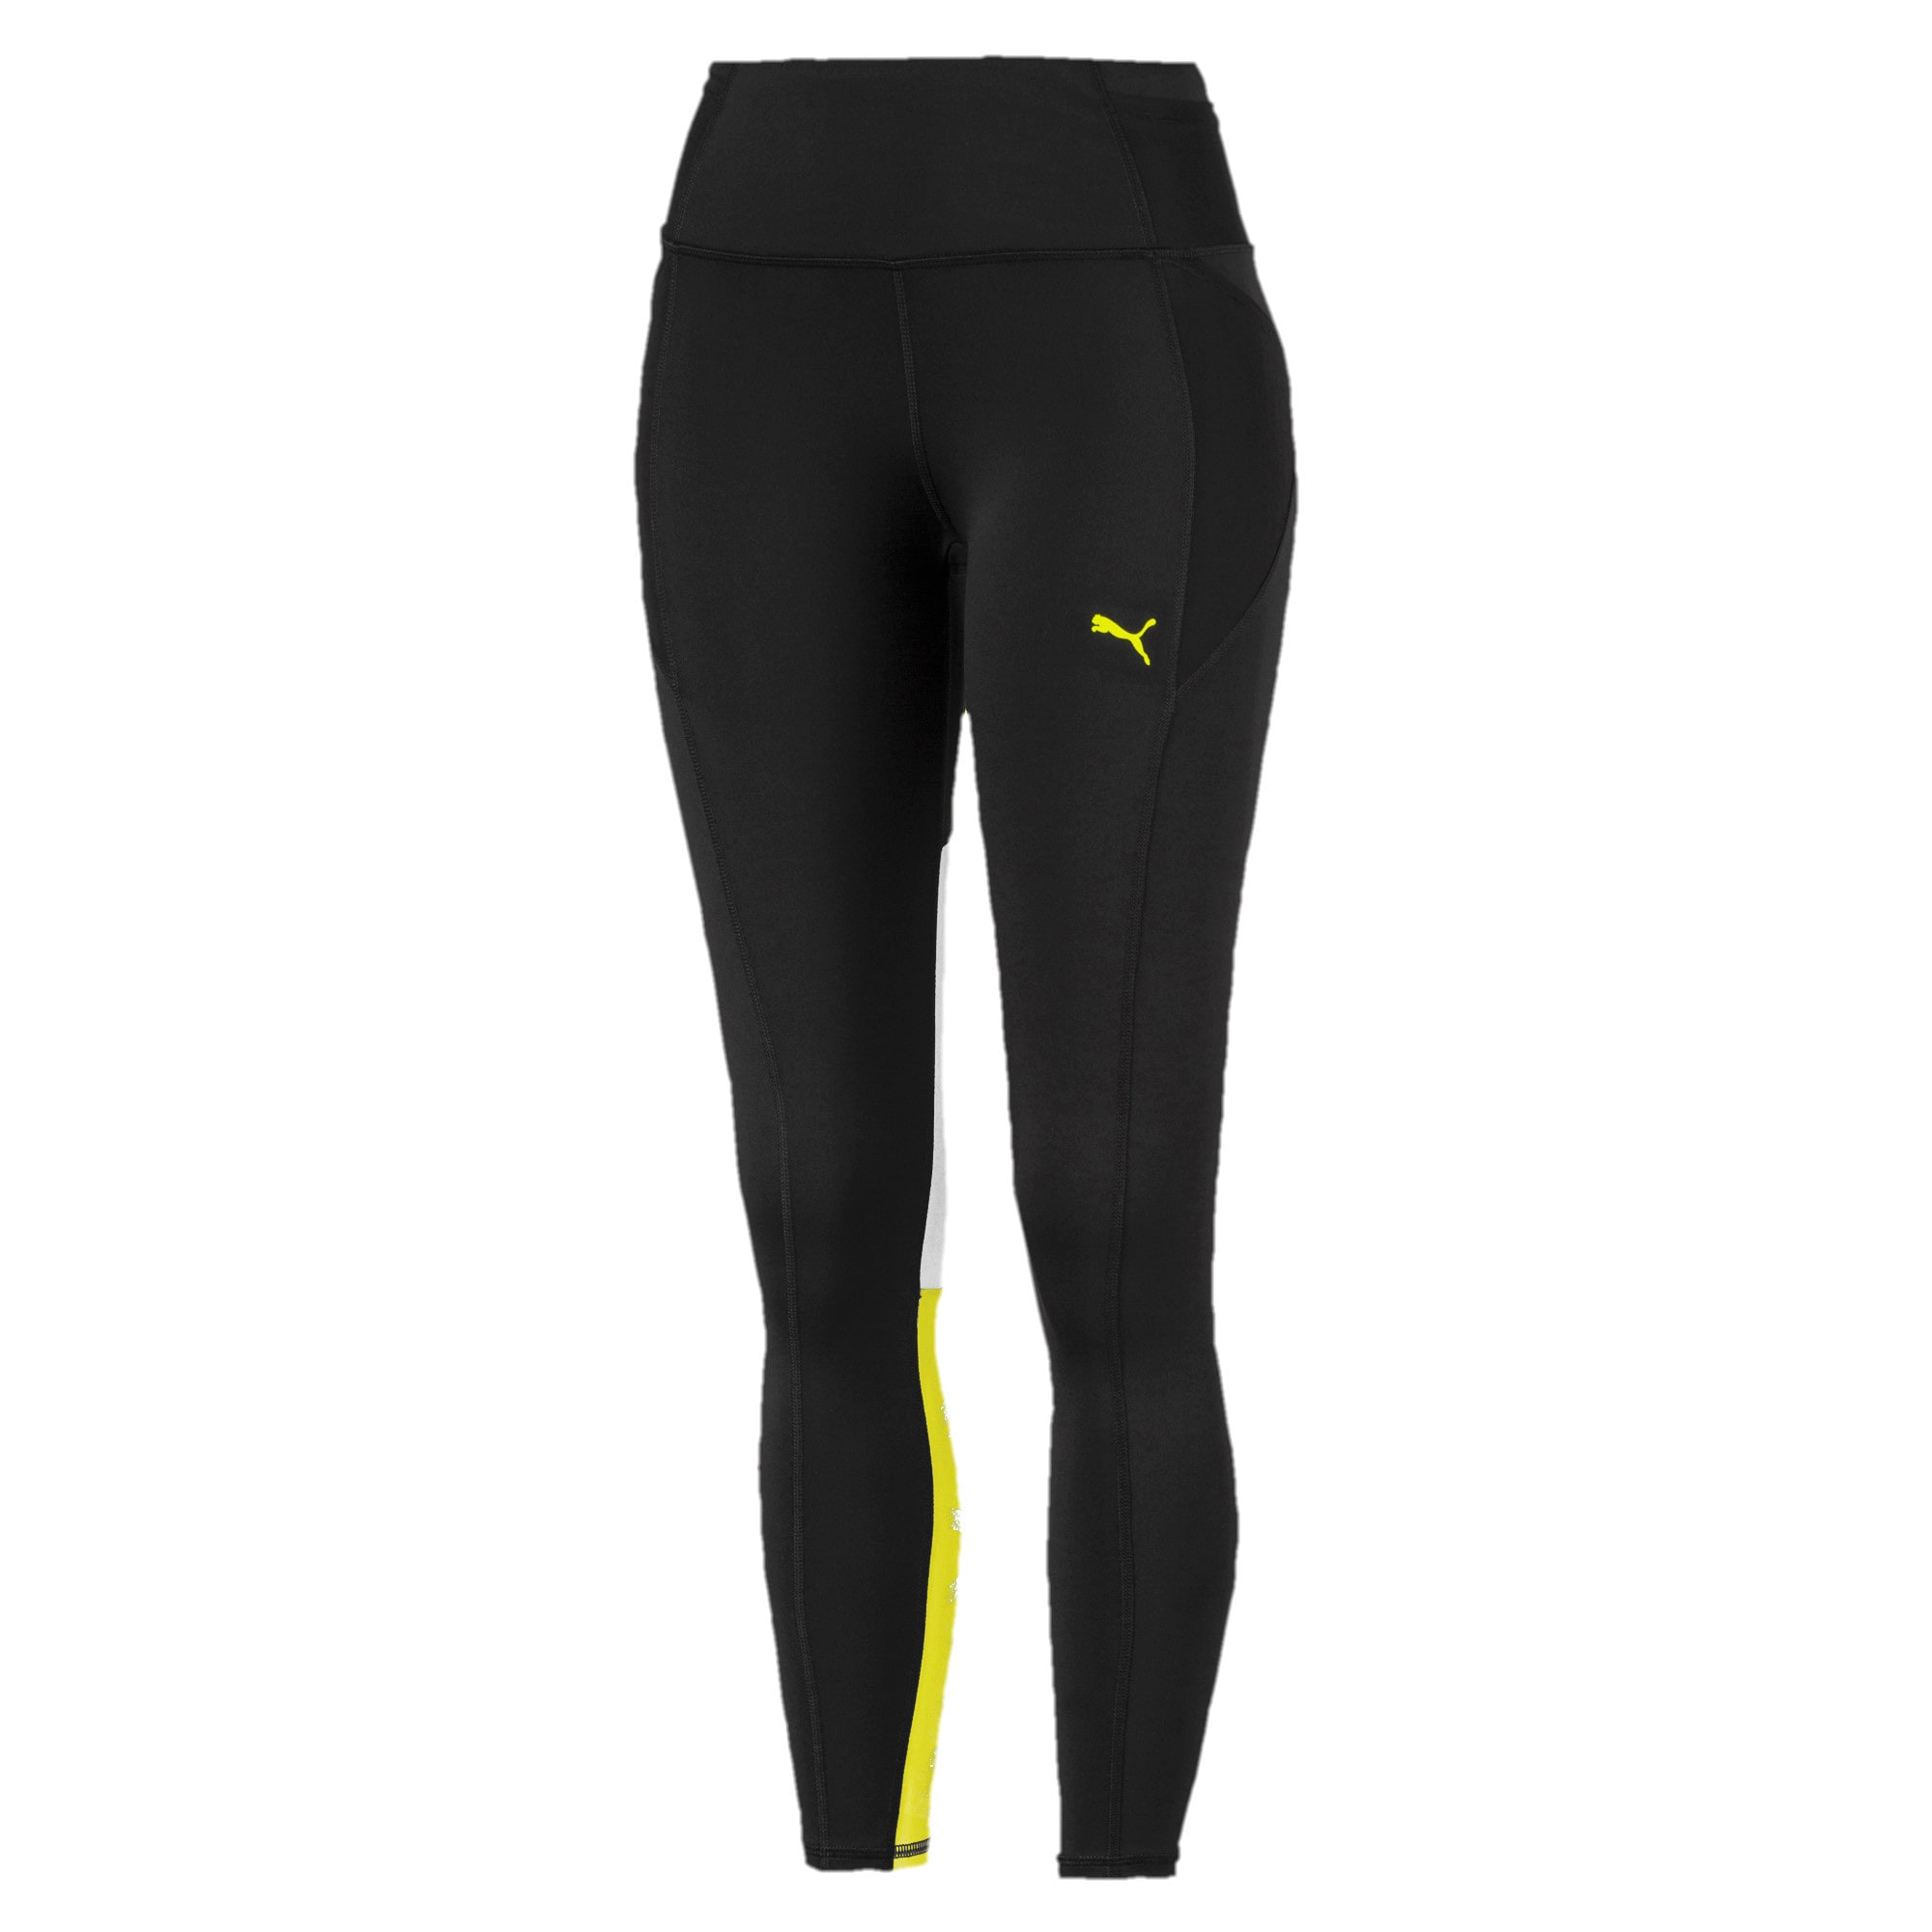 Thumbnail 4 of Feel It Women's 7/8 Leggings, Puma Black-Yellow Alert, medium